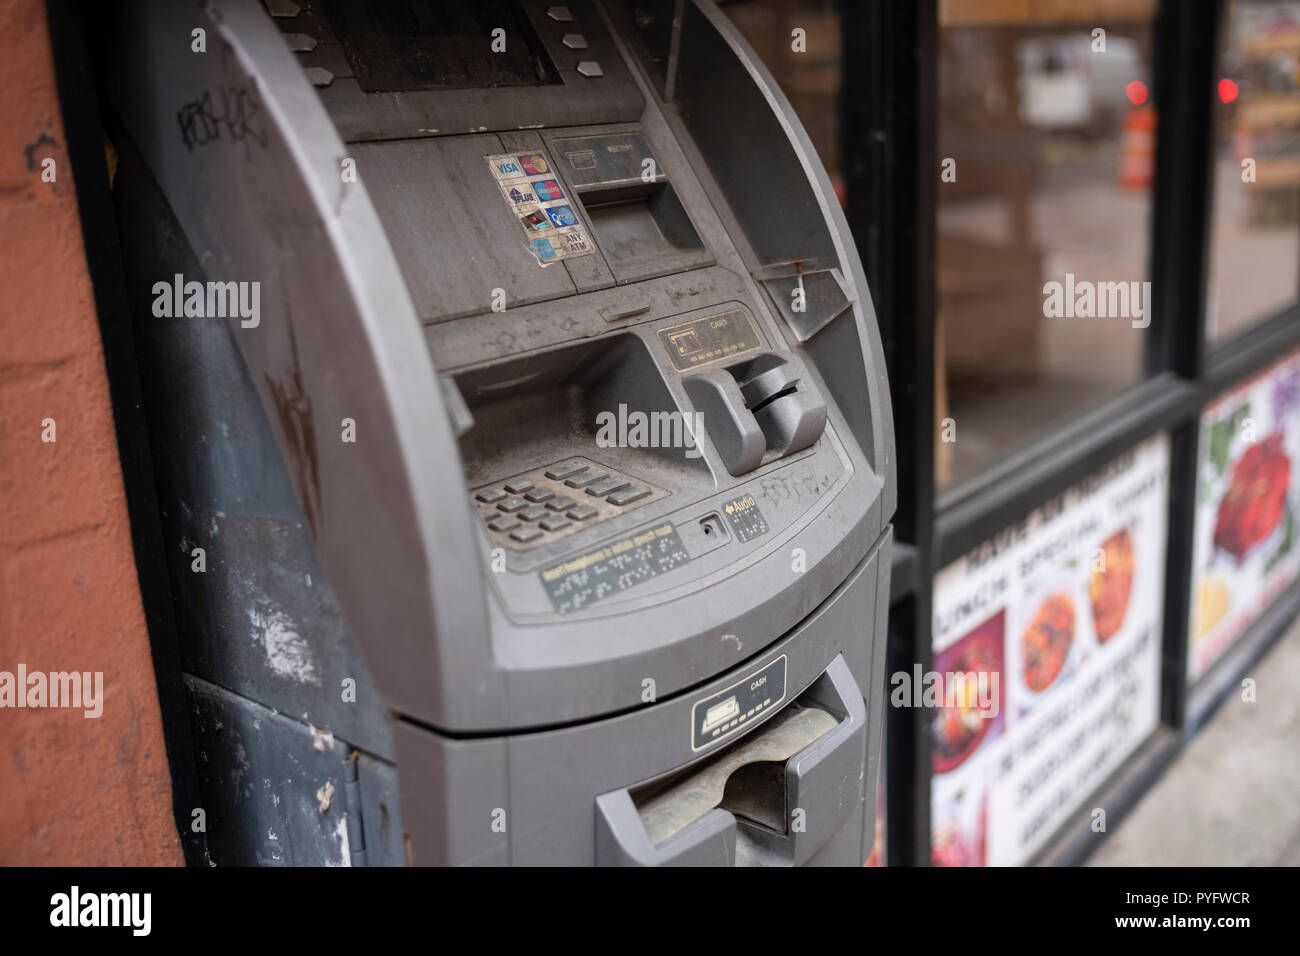 Is cash dead? An outdated ATM machine, Hell's Kitchen, New York City, NY. - Stock Image